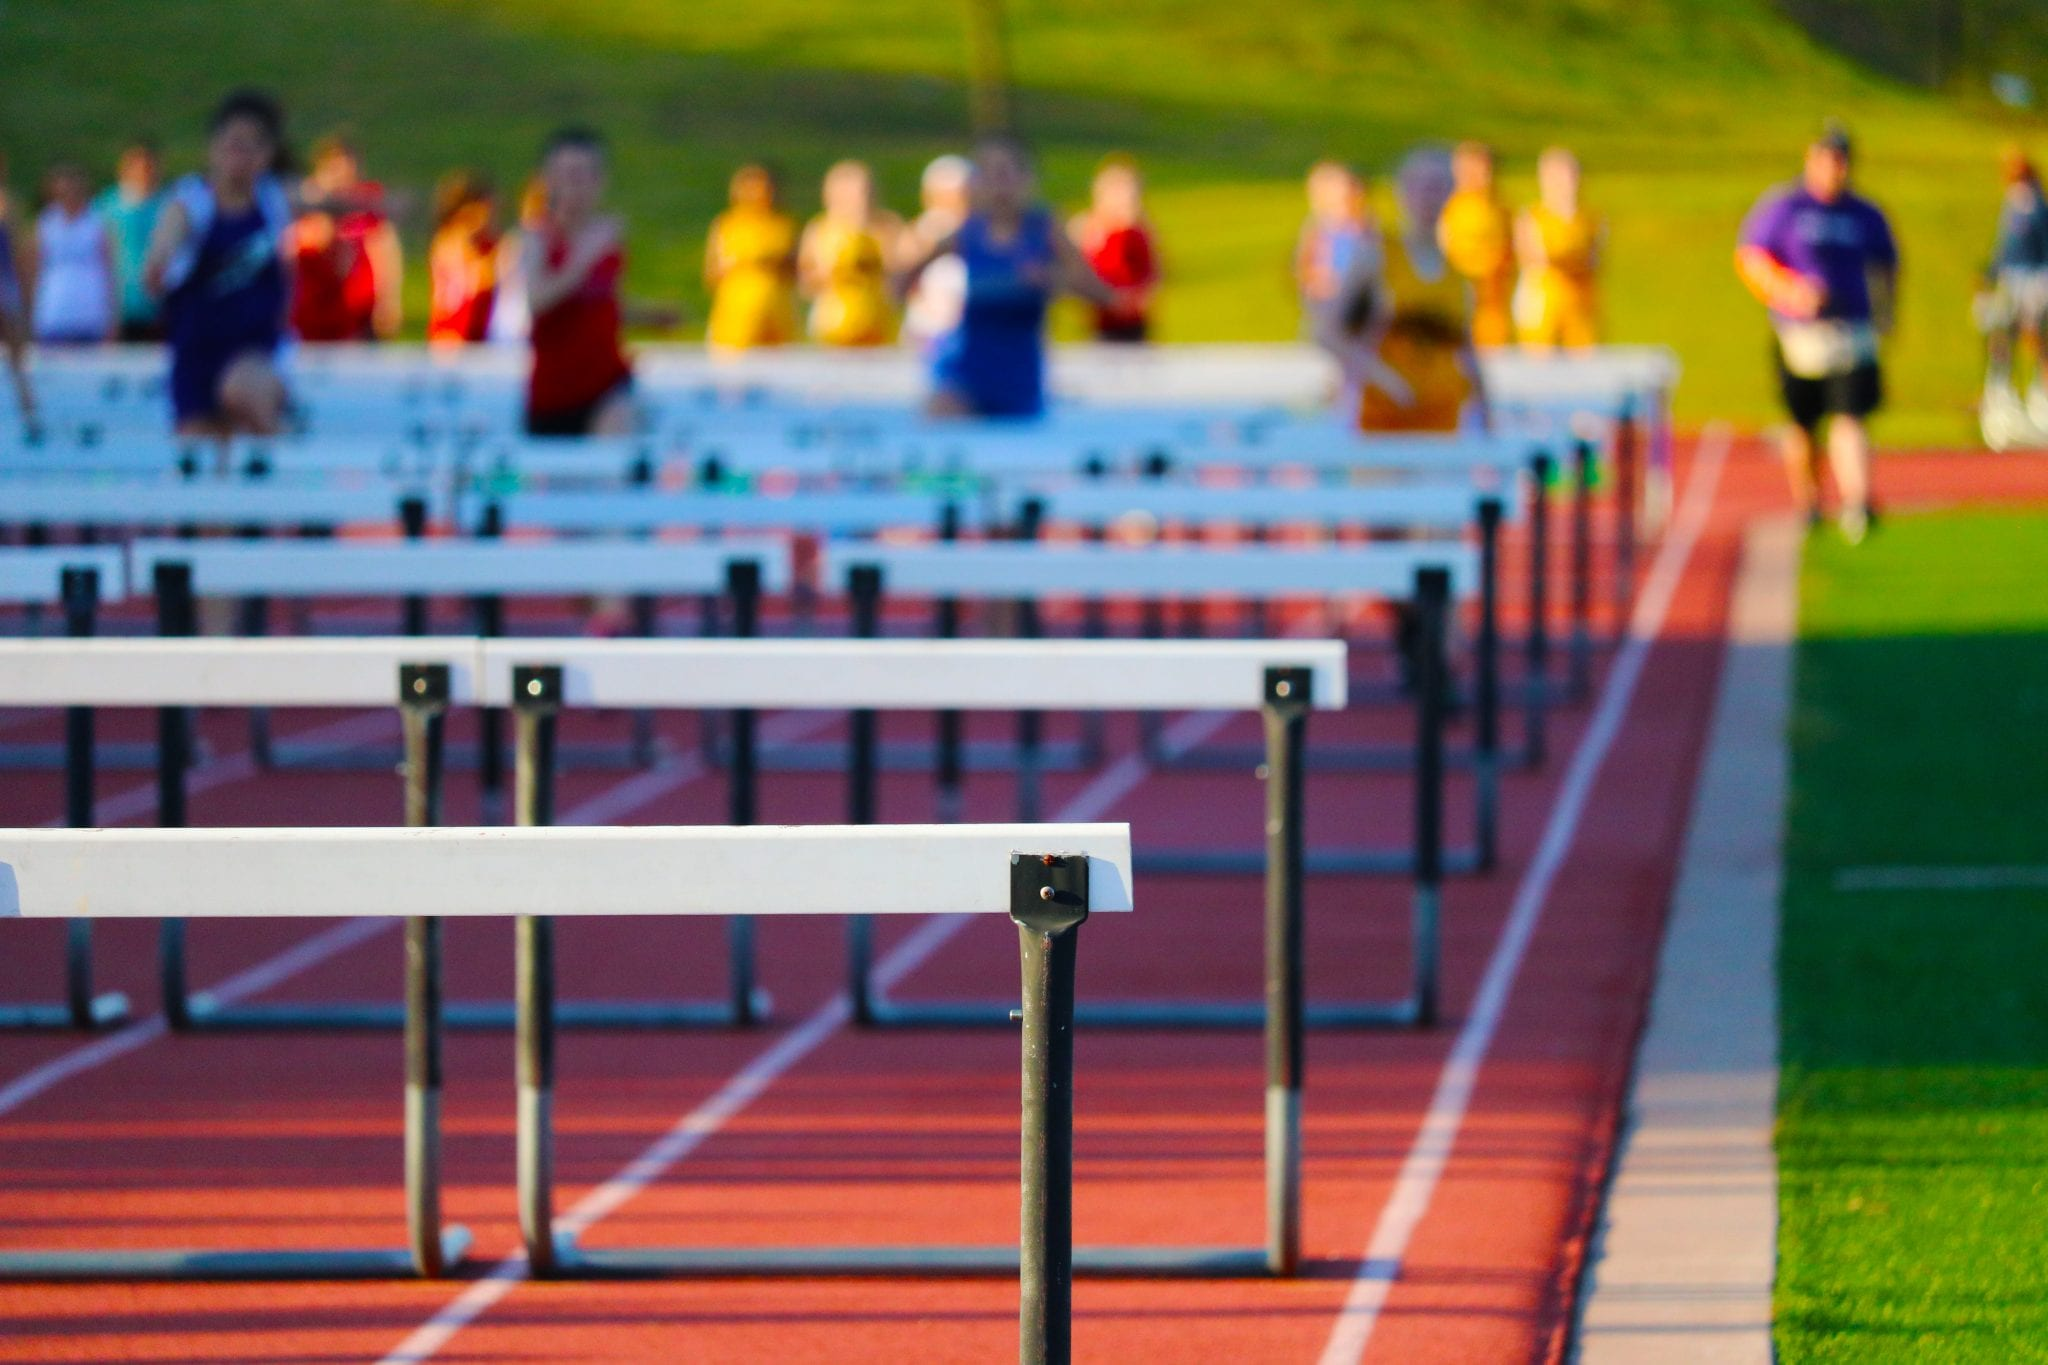 Can Your Company Jump These Hurdles To Grow?